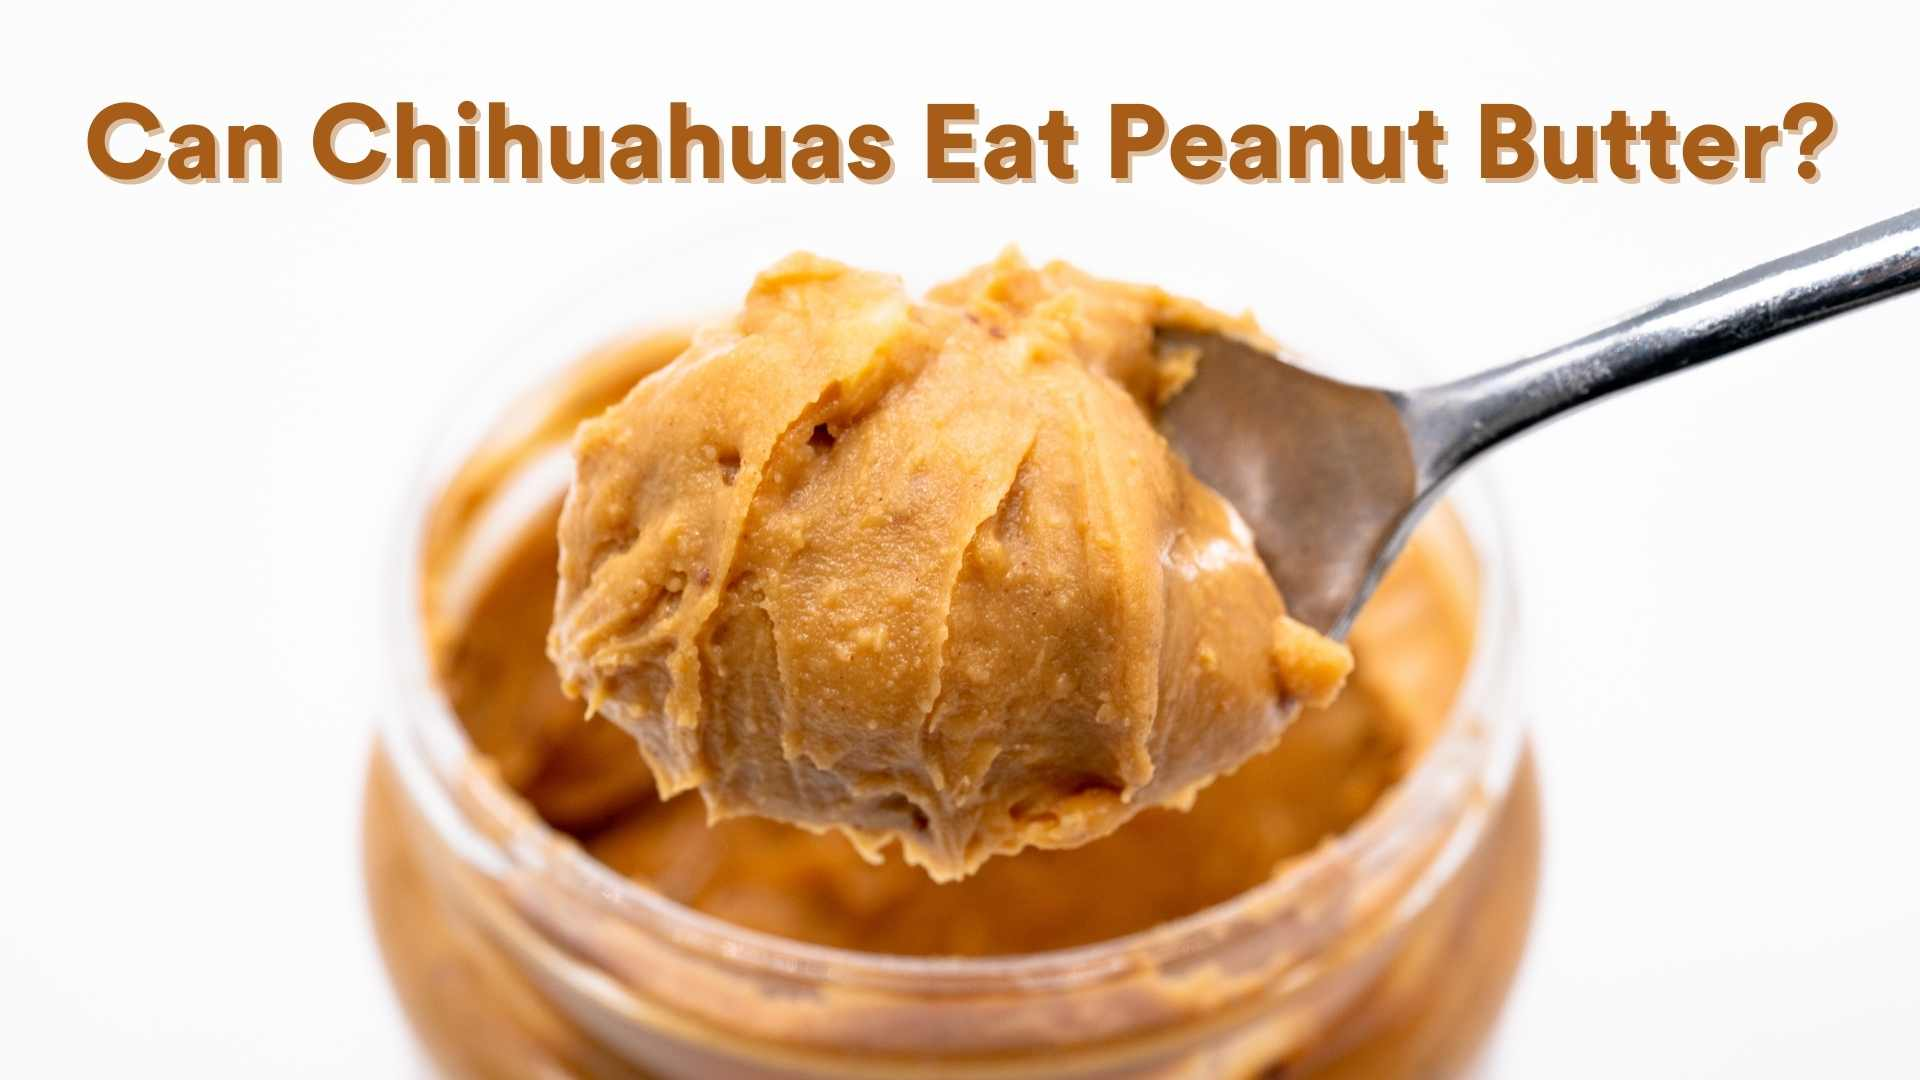 can chihuahuas eat peanut butter